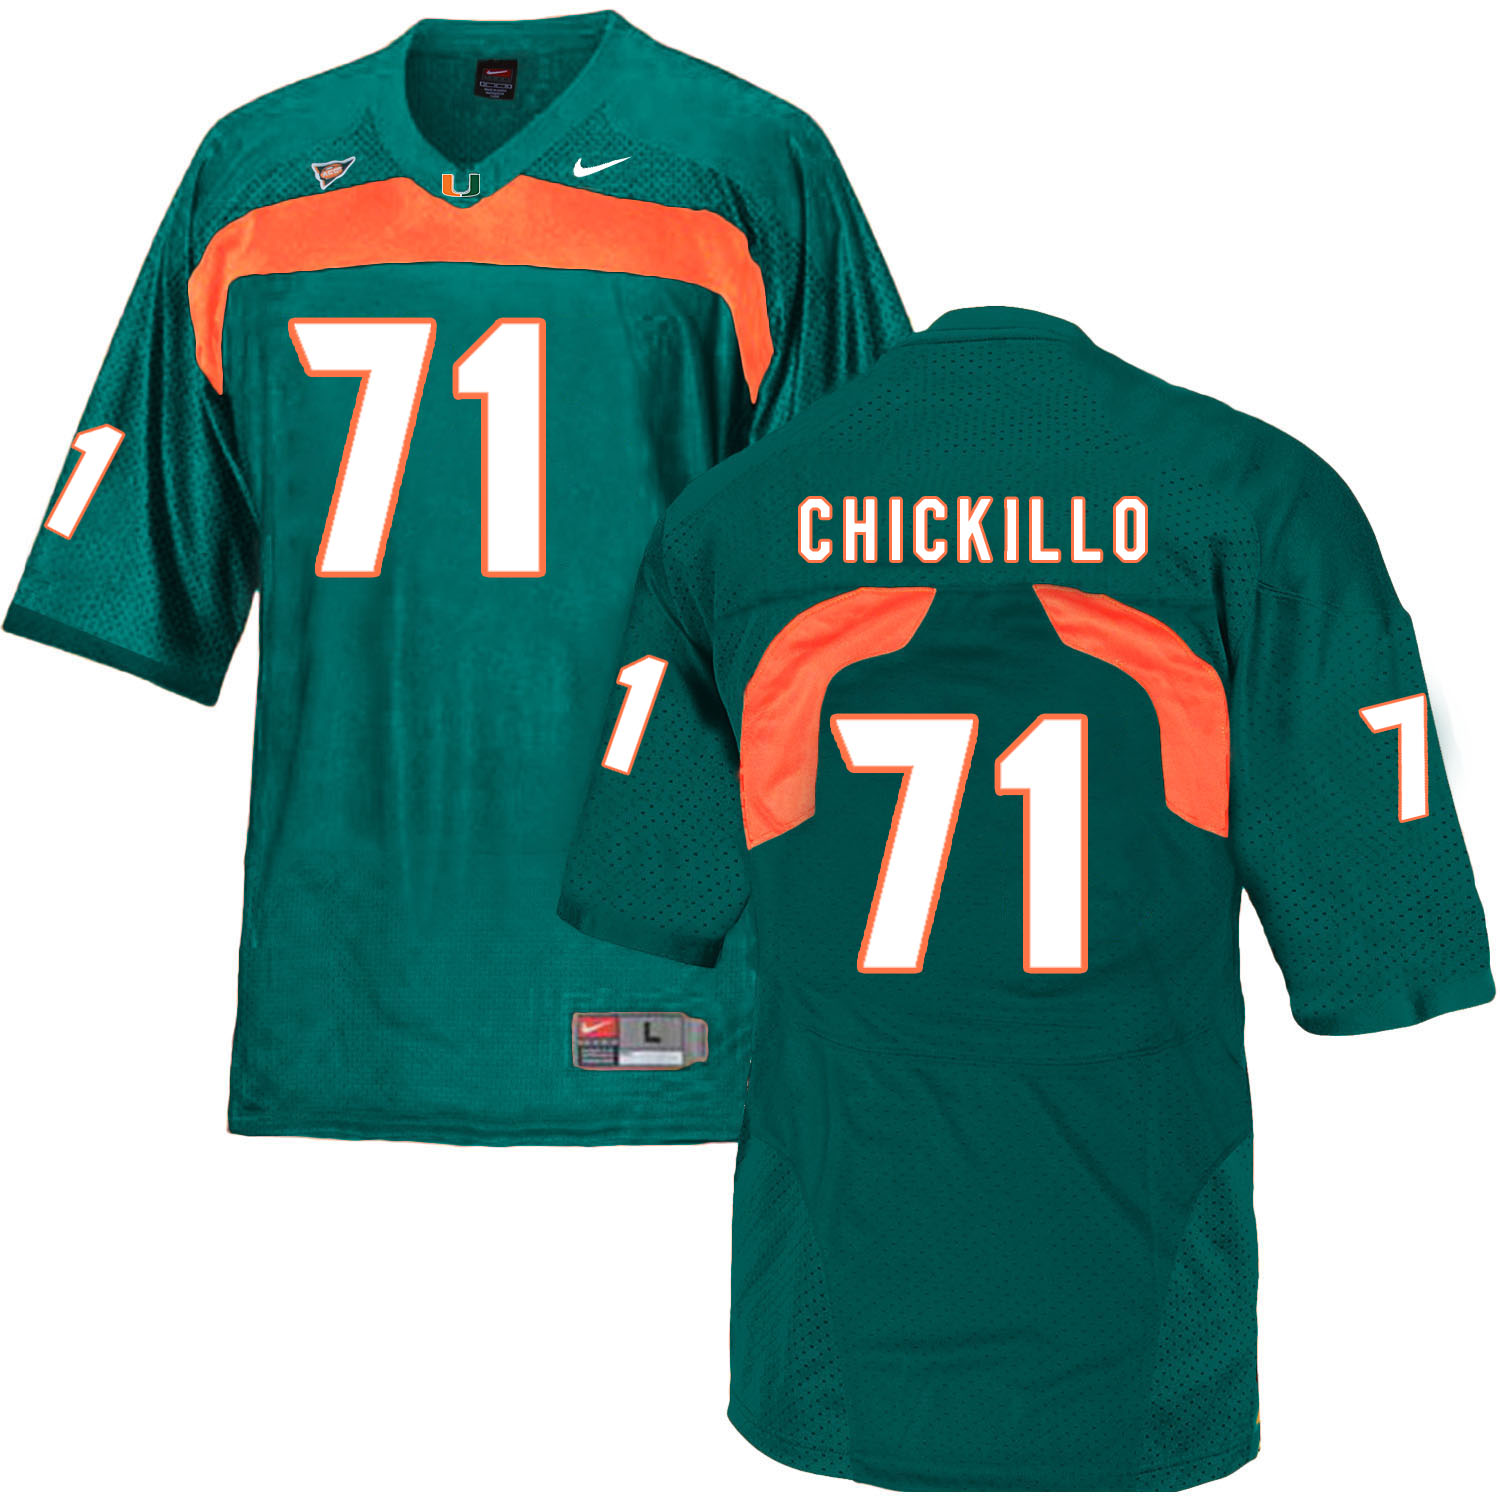 Miami Hurricanes 71 Anthony Chickillo Green College Football Jersey